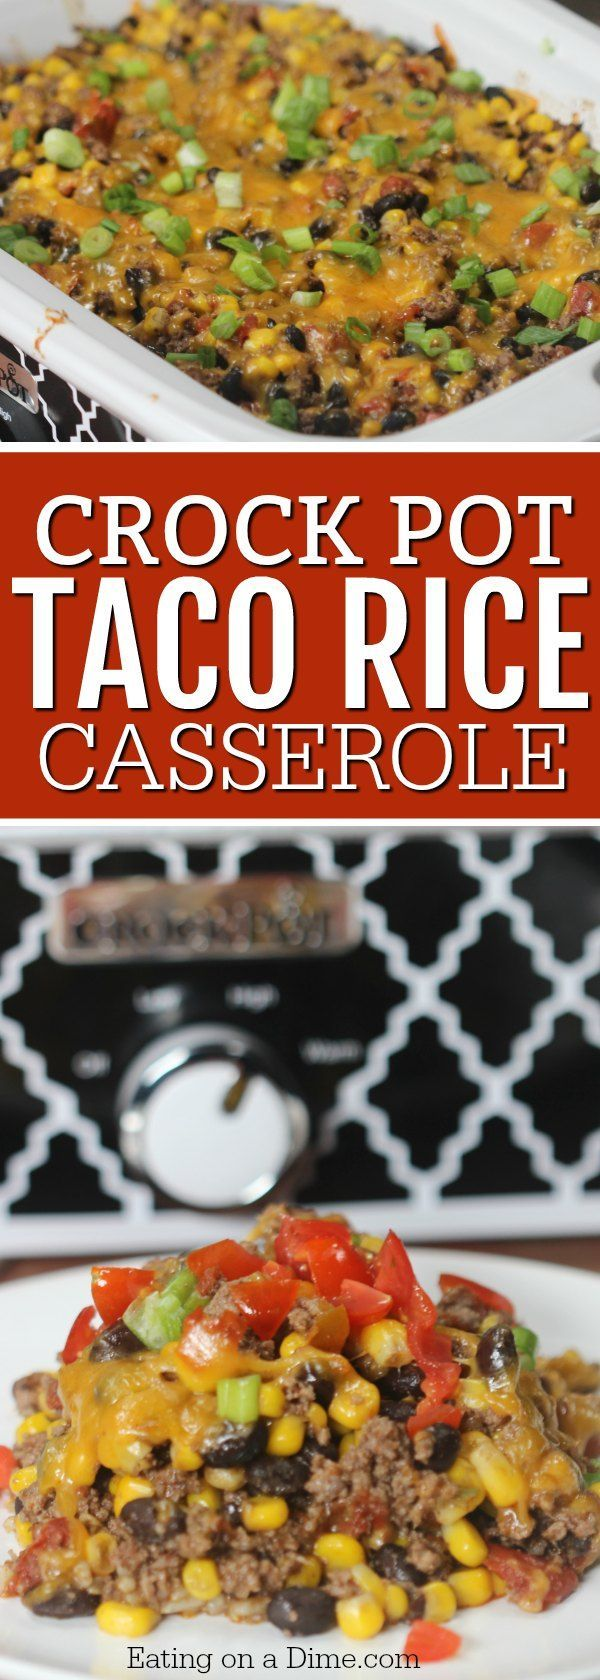 Need an easy crock pot recipe? Try this crock pot Mexican Taco Casserole Recipe. This easy beef taco casserole recipe is amazing!